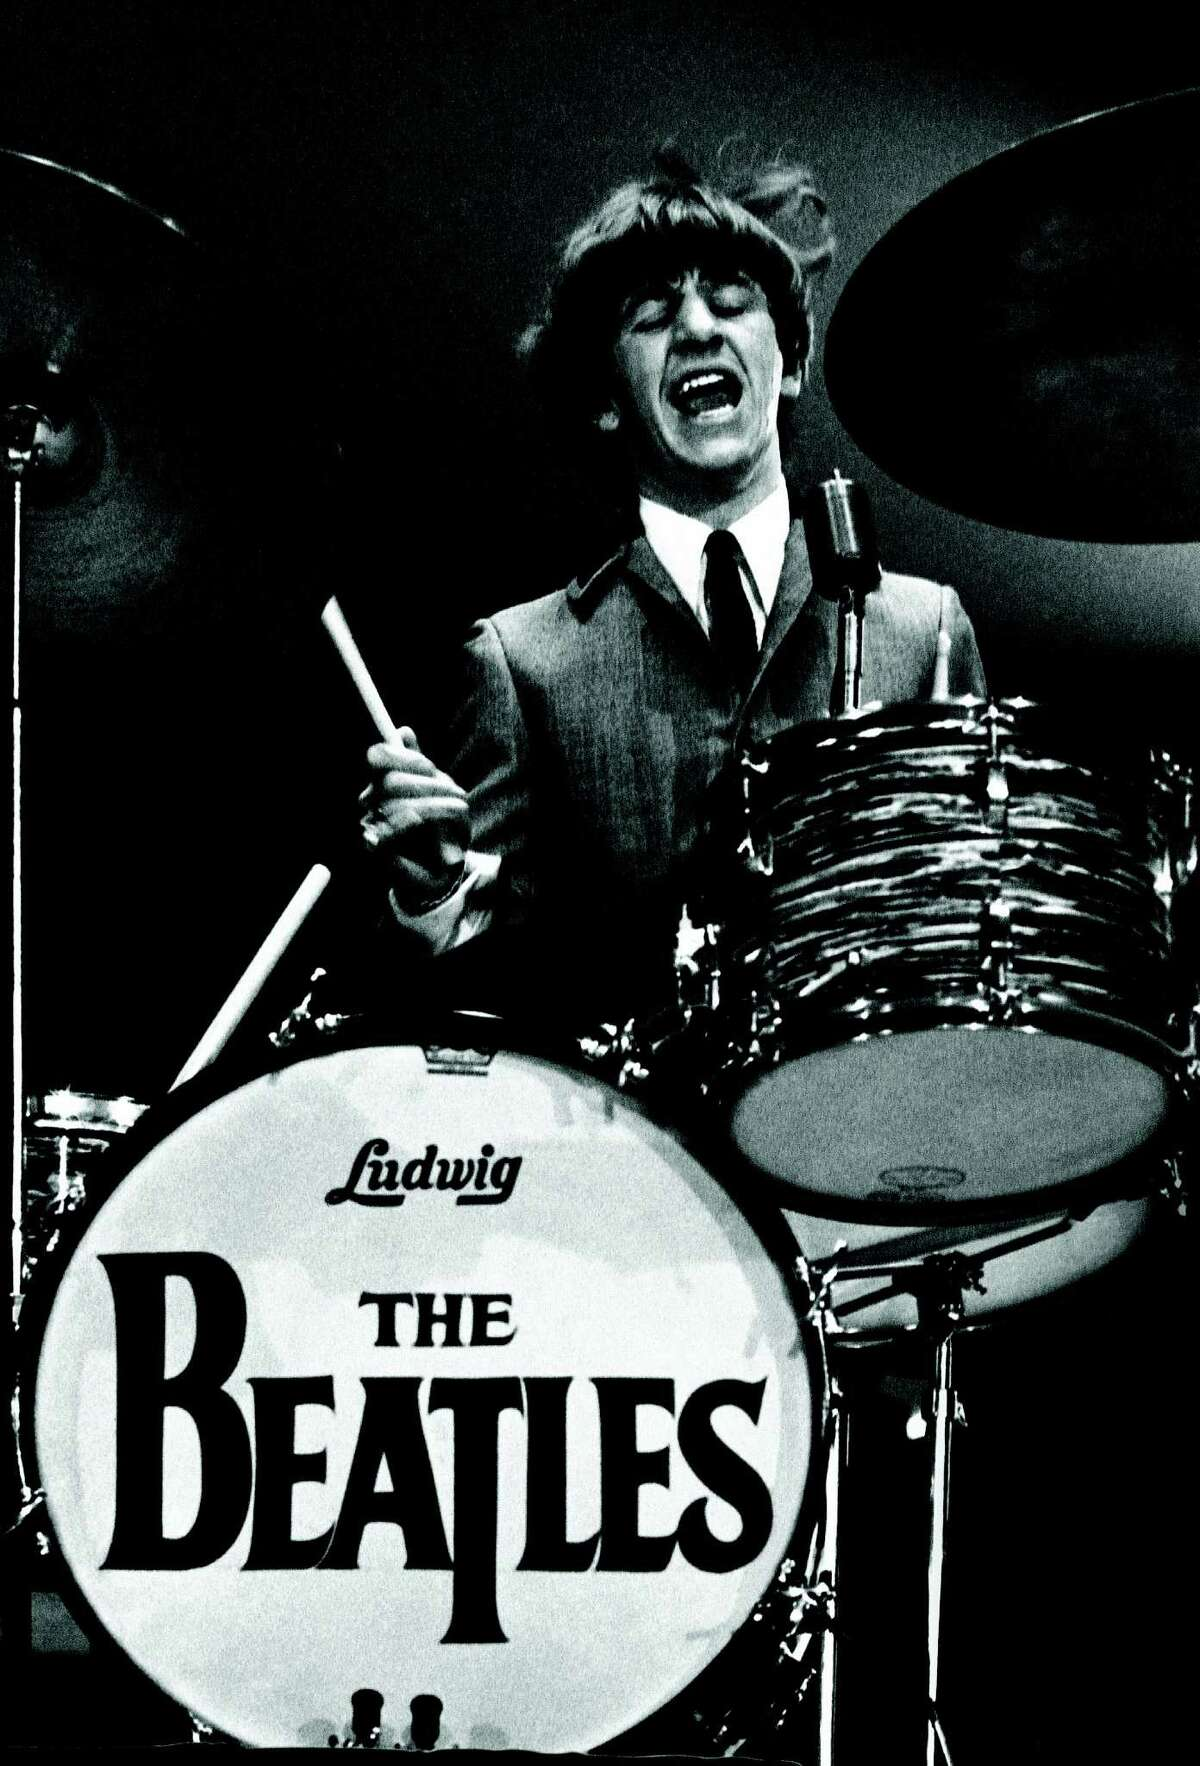 Ringo Starr plays drums at the Beatles' first U.S. concert on Feb. 11, 1964, at the Washington Coliseum. The concert took place in a boxing arena.